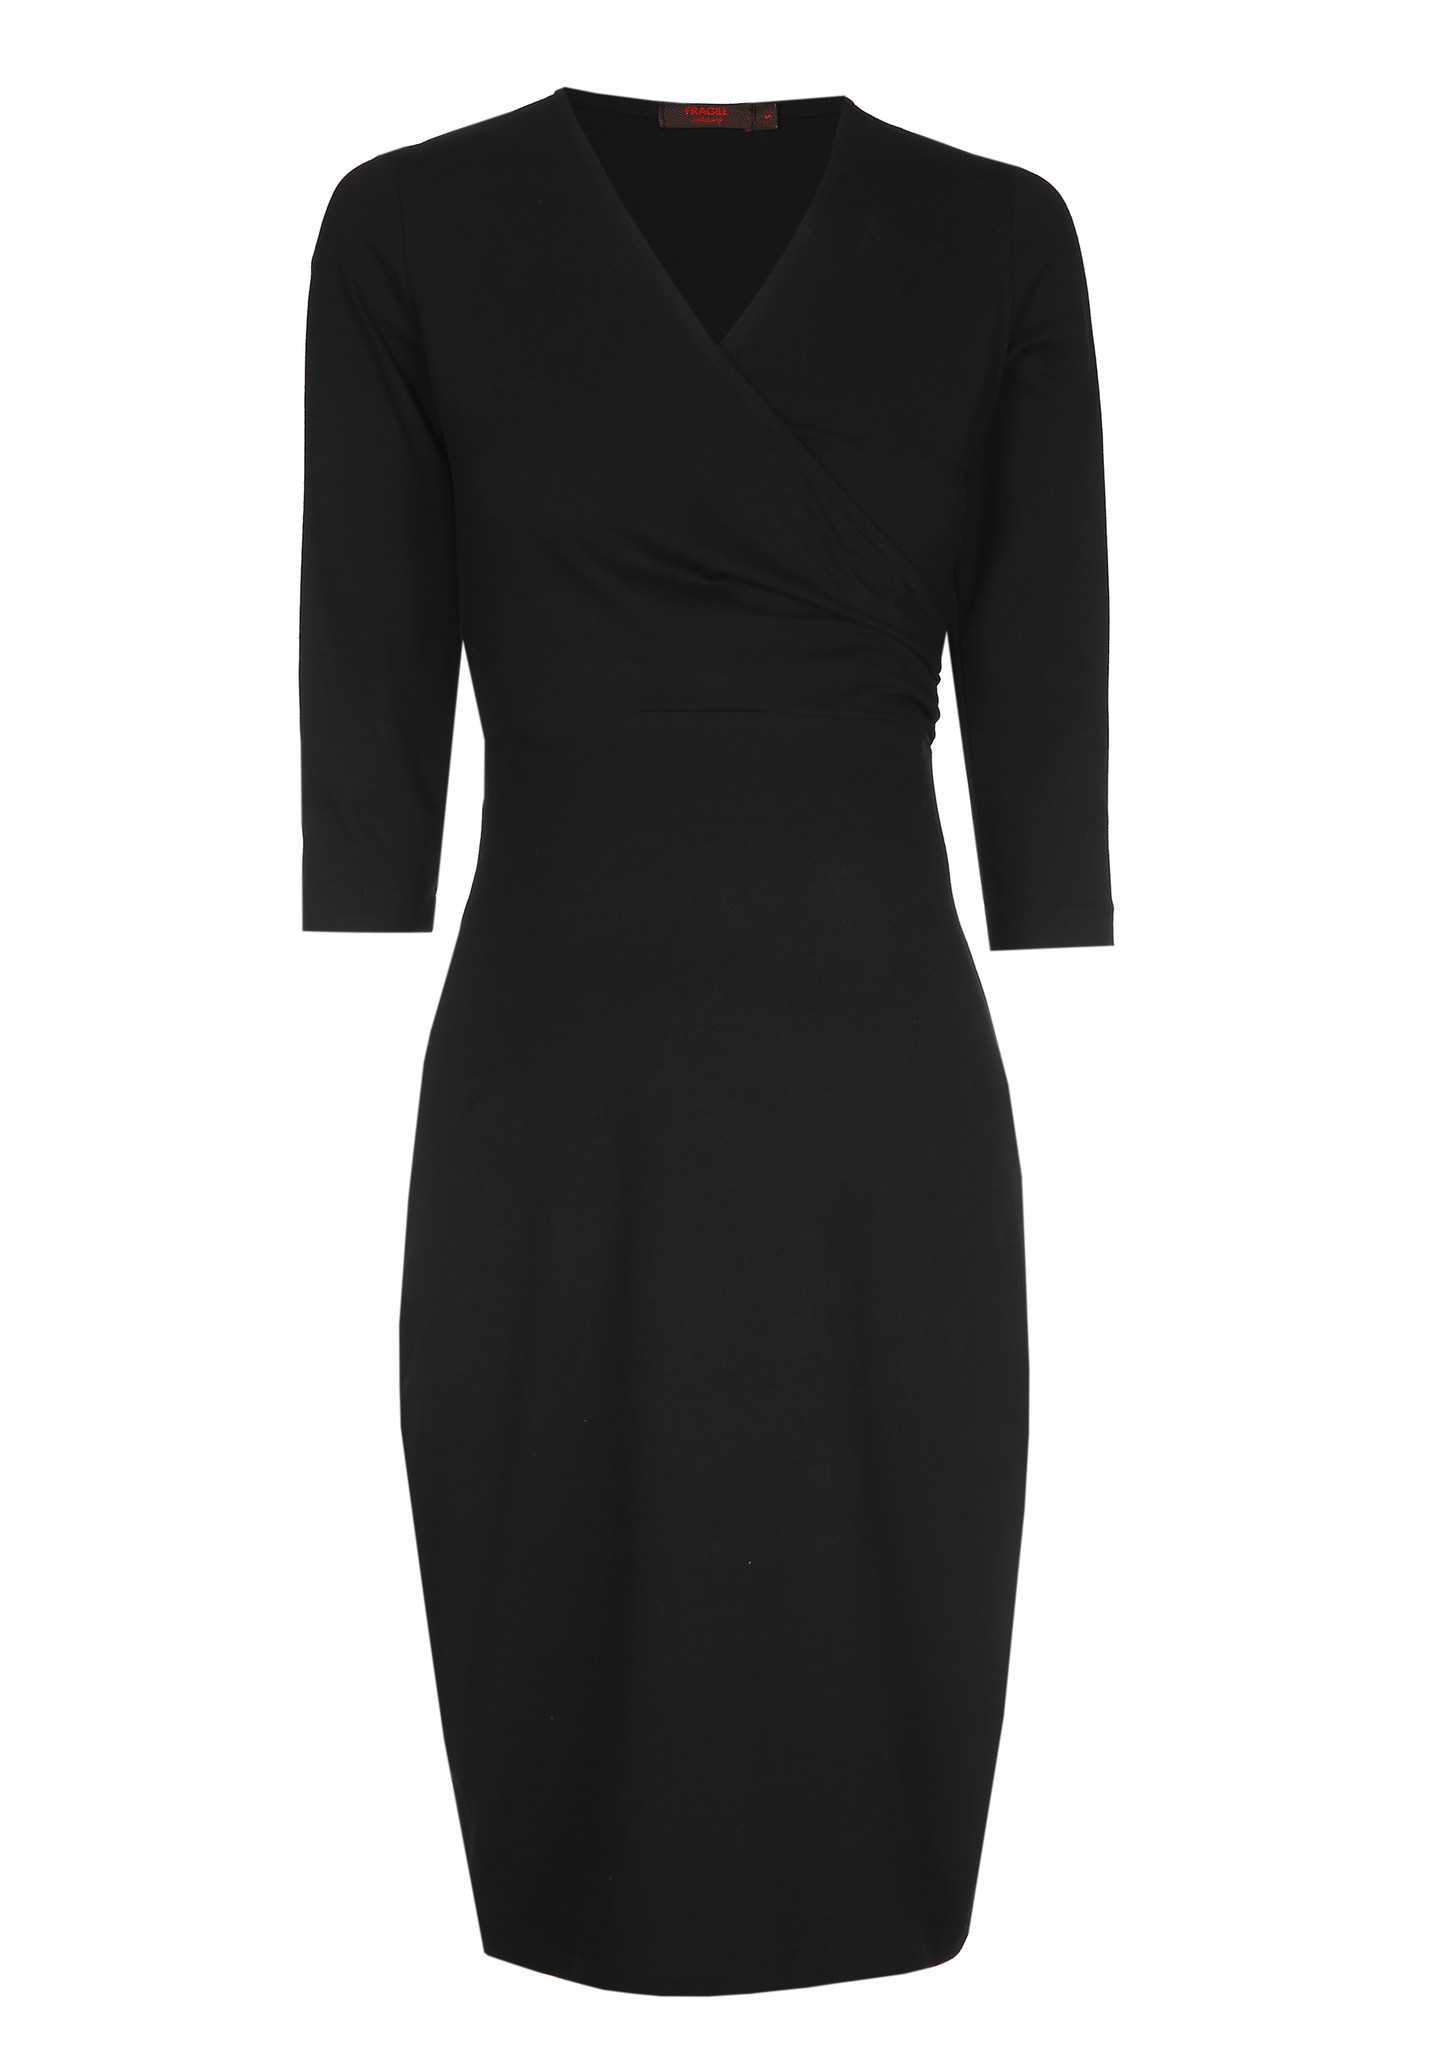 Wrap dress 3/4 sleeves - black-2